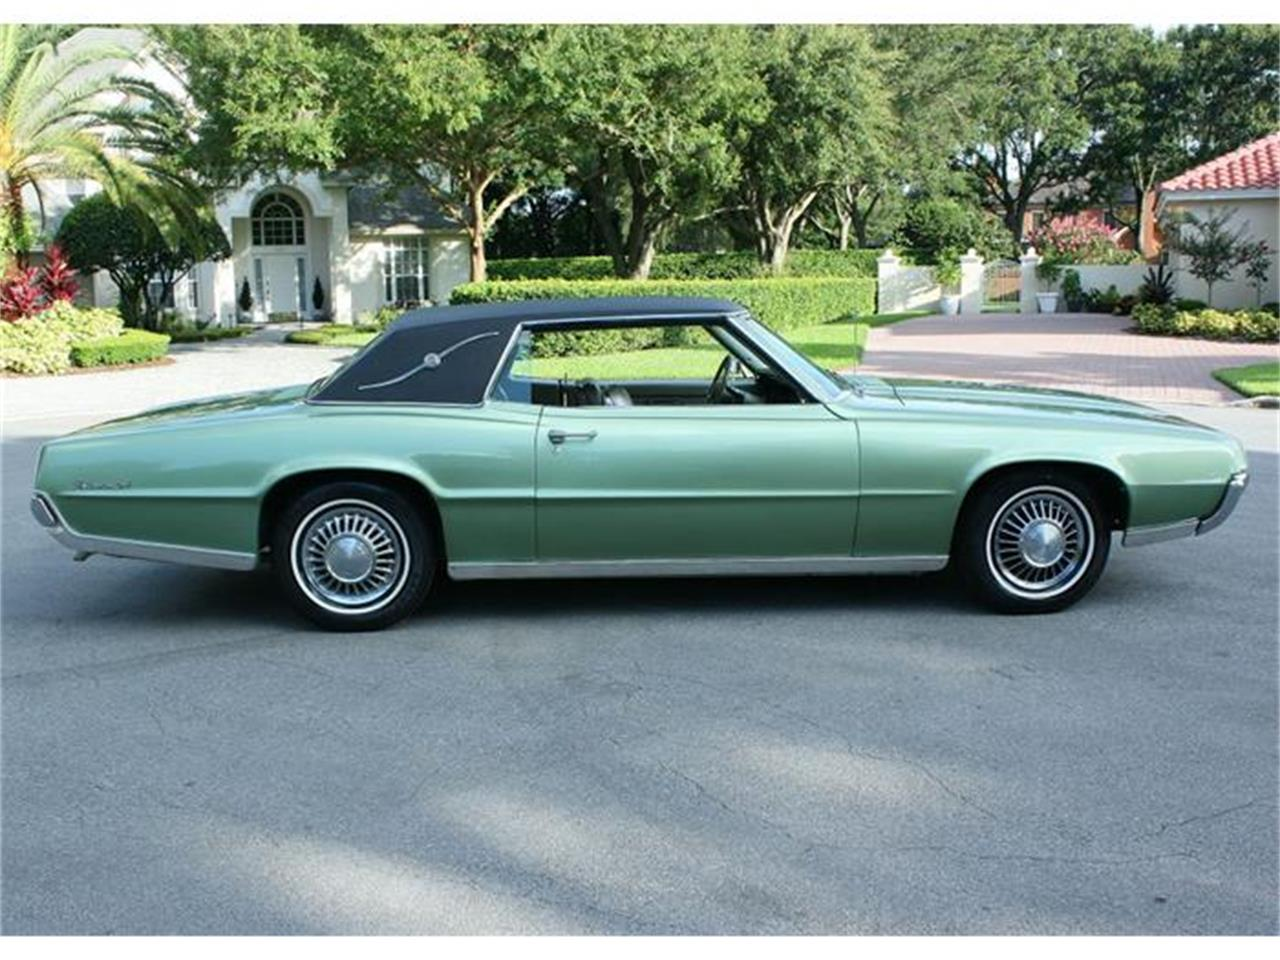 Large Picture of Classic '67 Ford Thunderbird located in Lakeland Florida - $18,500.00 - ITN1